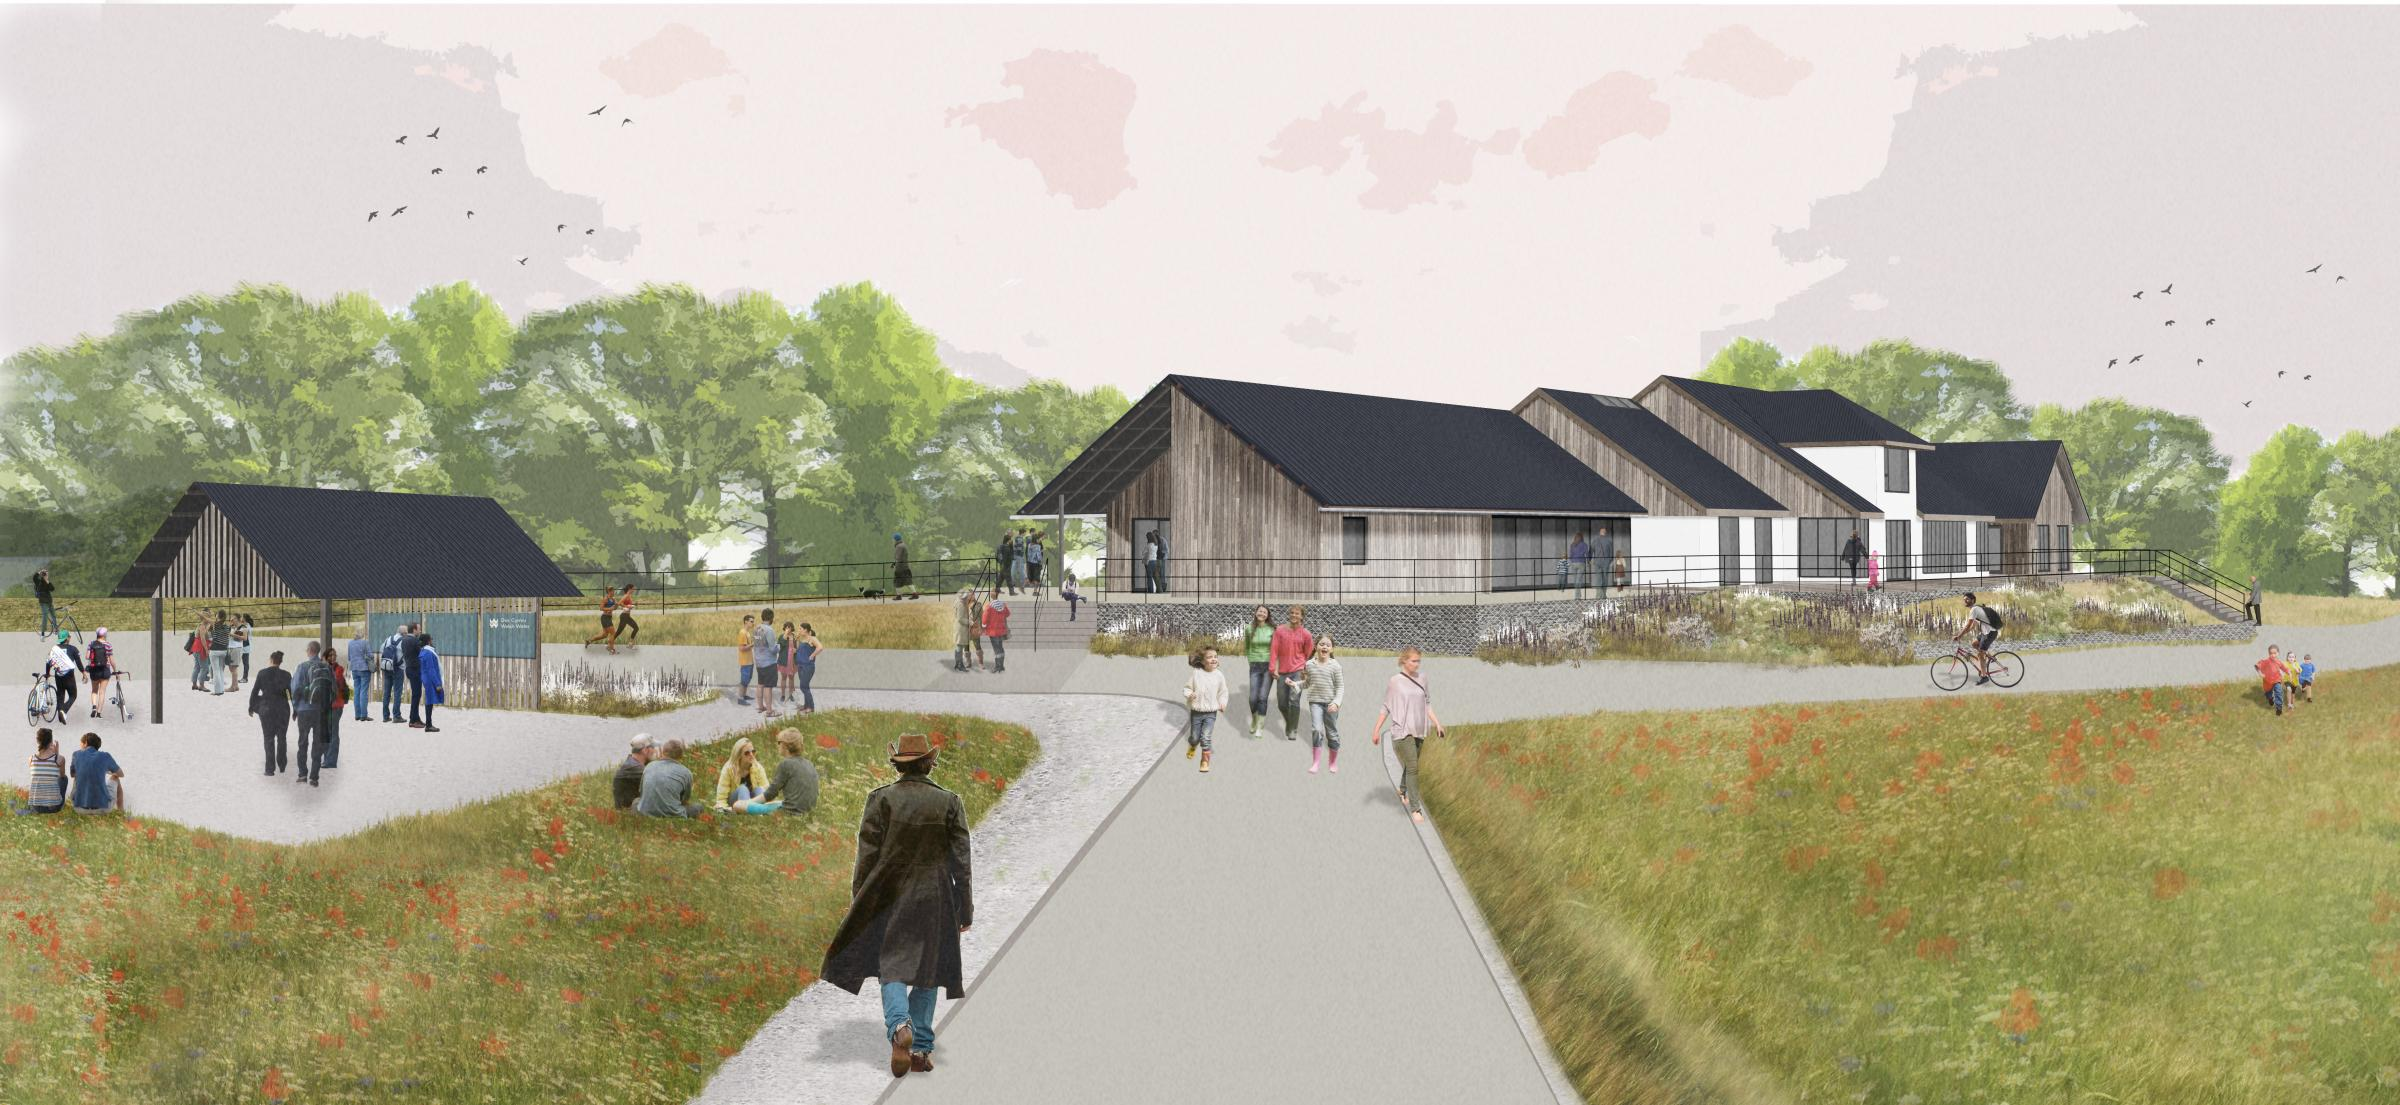 The artist's impression of the new visitor centre